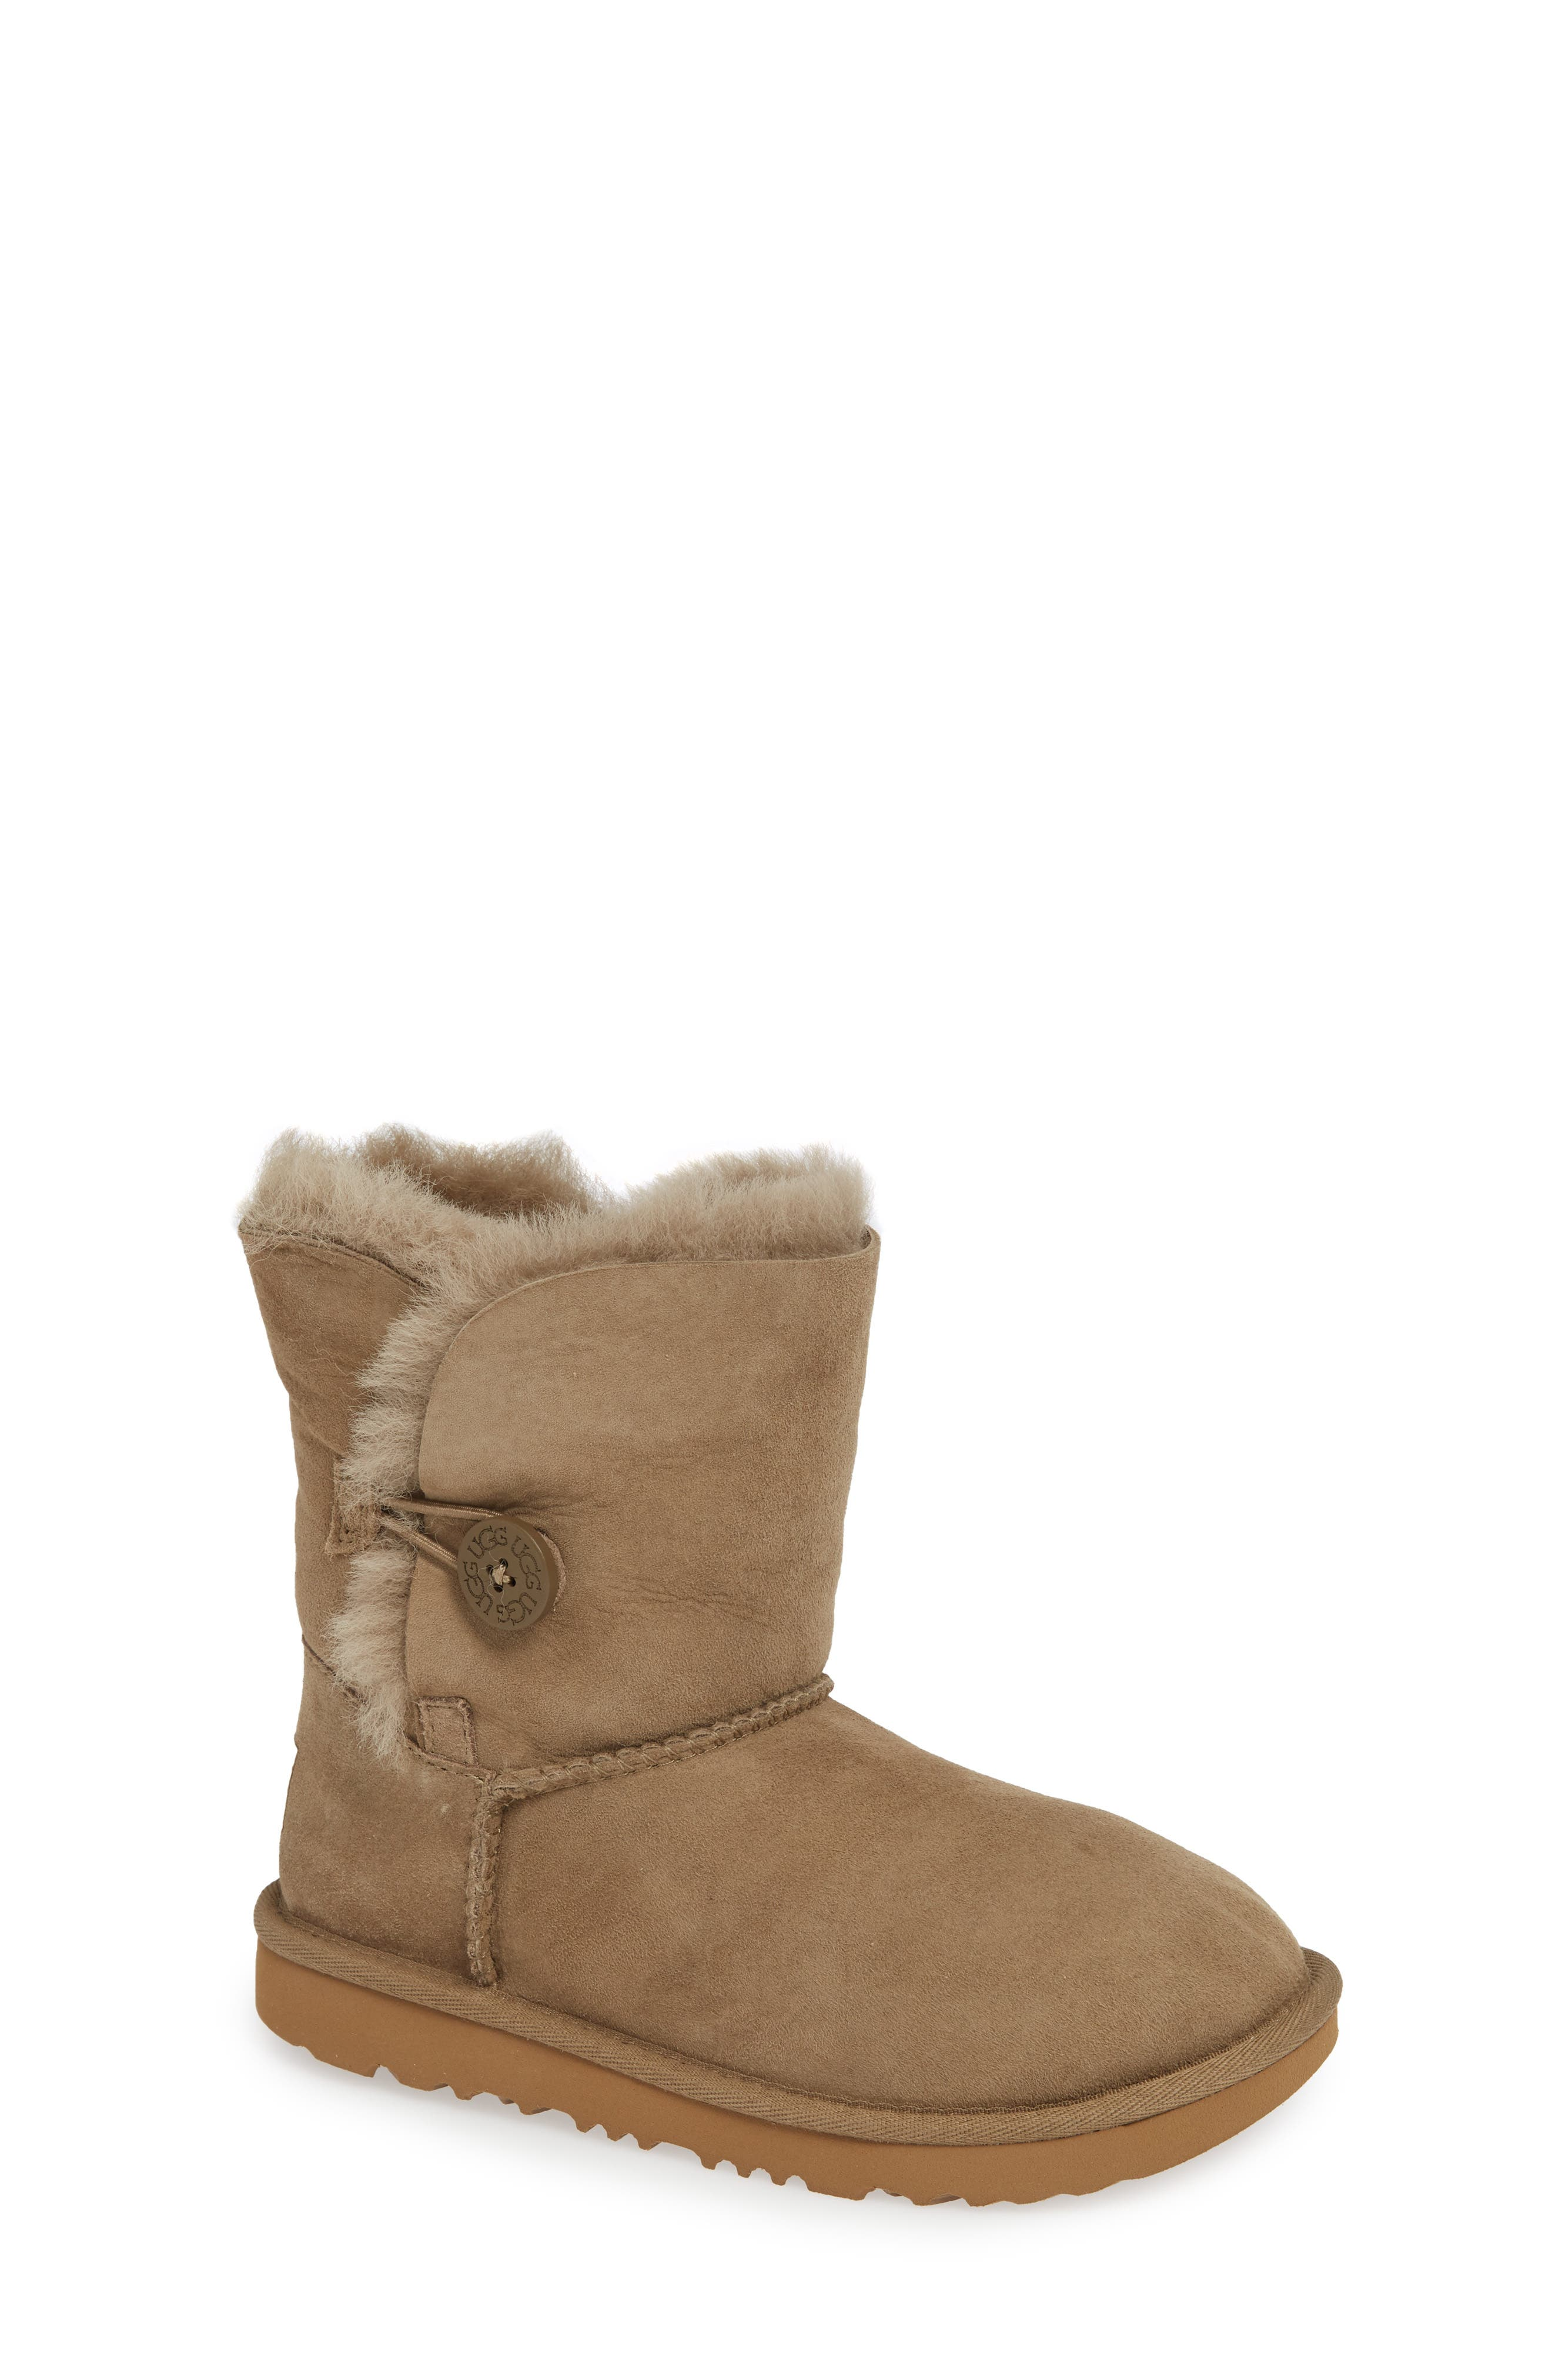 Bailey Button II Water Resistant Genuine Shearling Boot,                             Main thumbnail 1, color,                             ANTELOPE